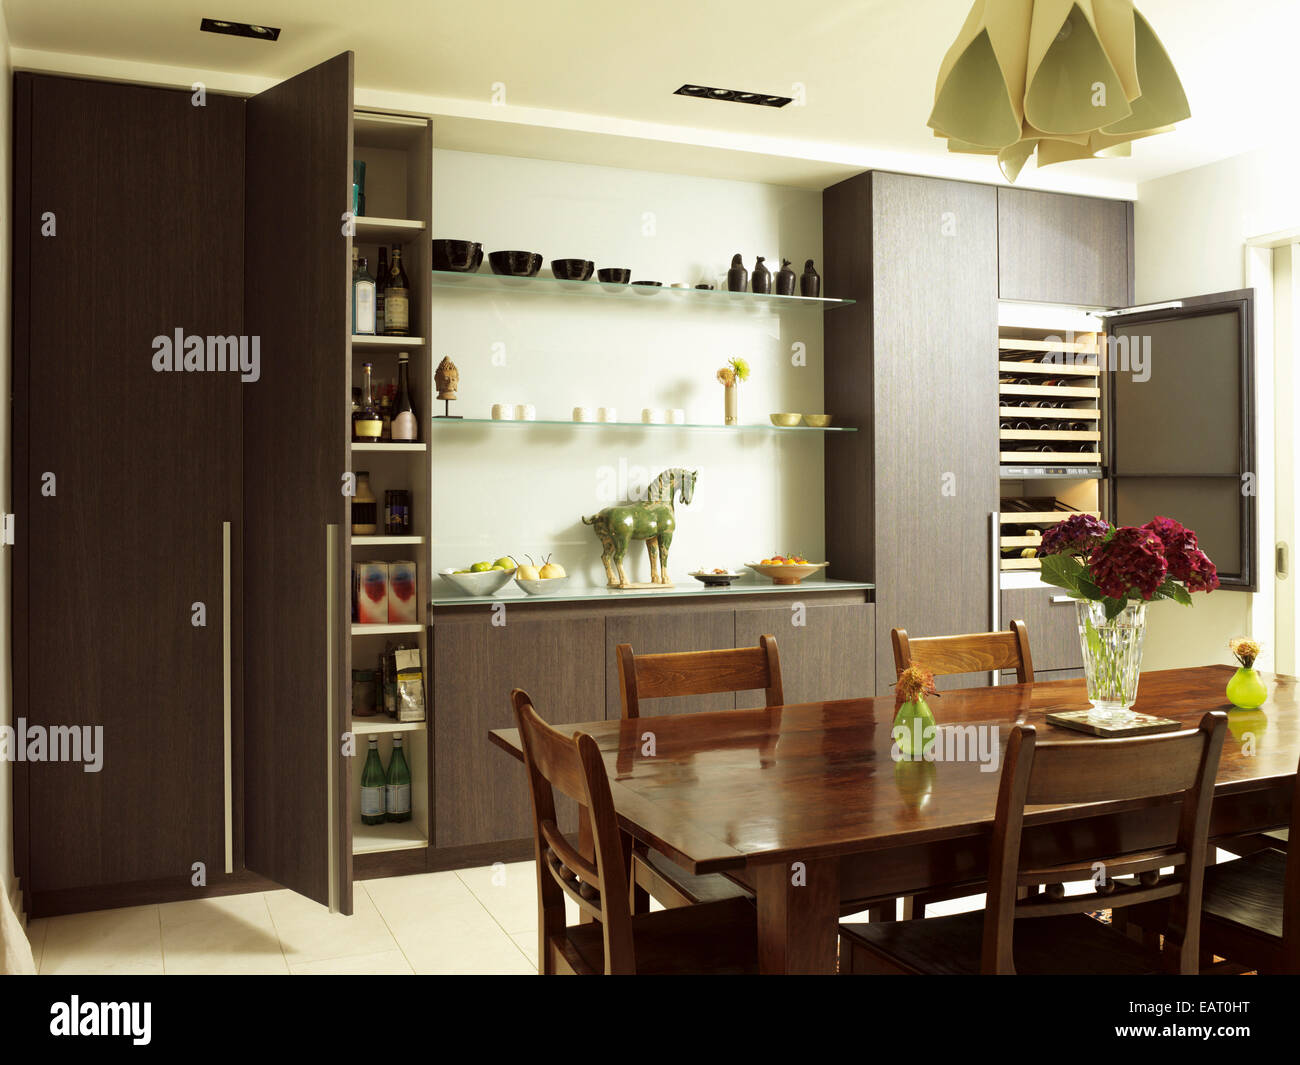 dining table and chairs in front of central island unit in spacious kitchen with wood units with open cupboard door spacious eat kitchen